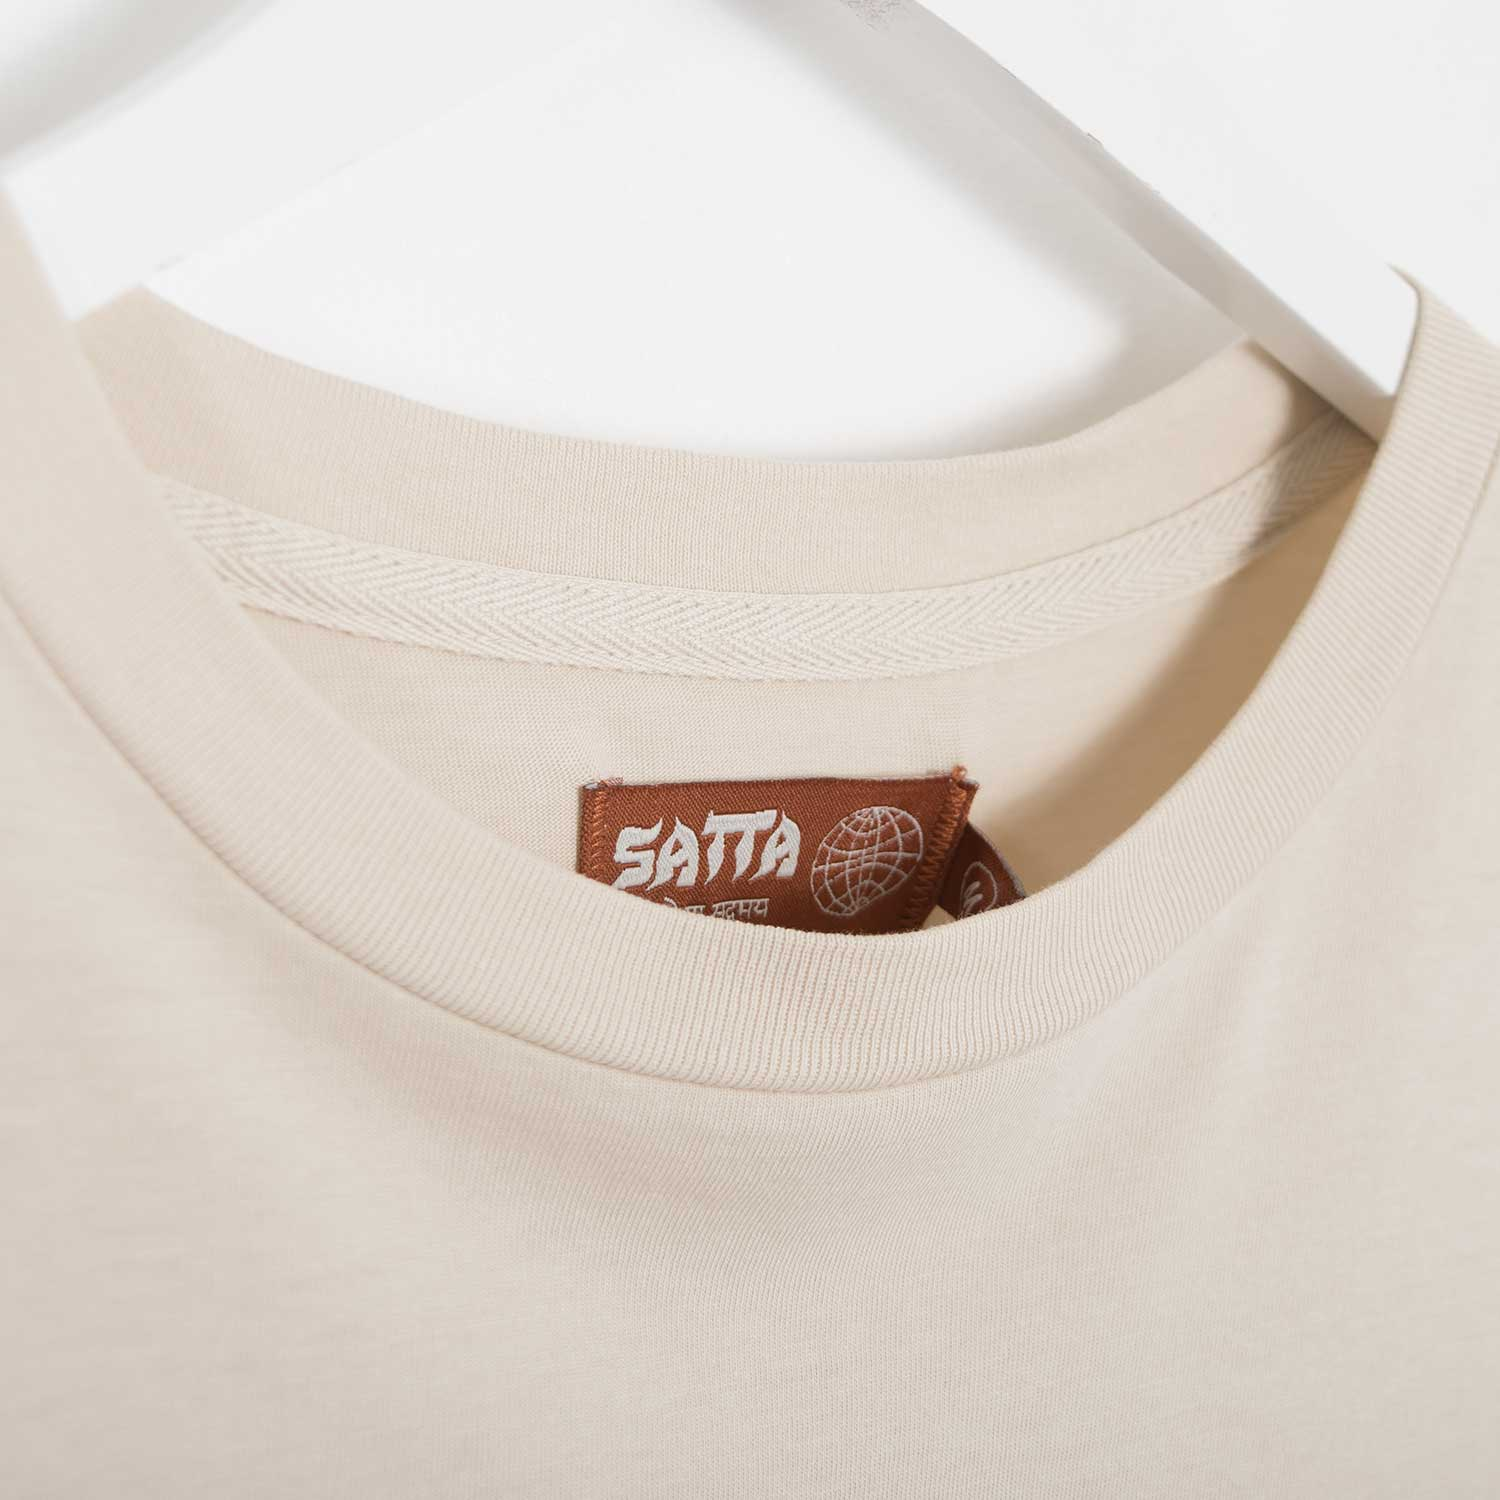 Satta Welcome Home T-Shirt - Calico T-Shirt - CARTOCON